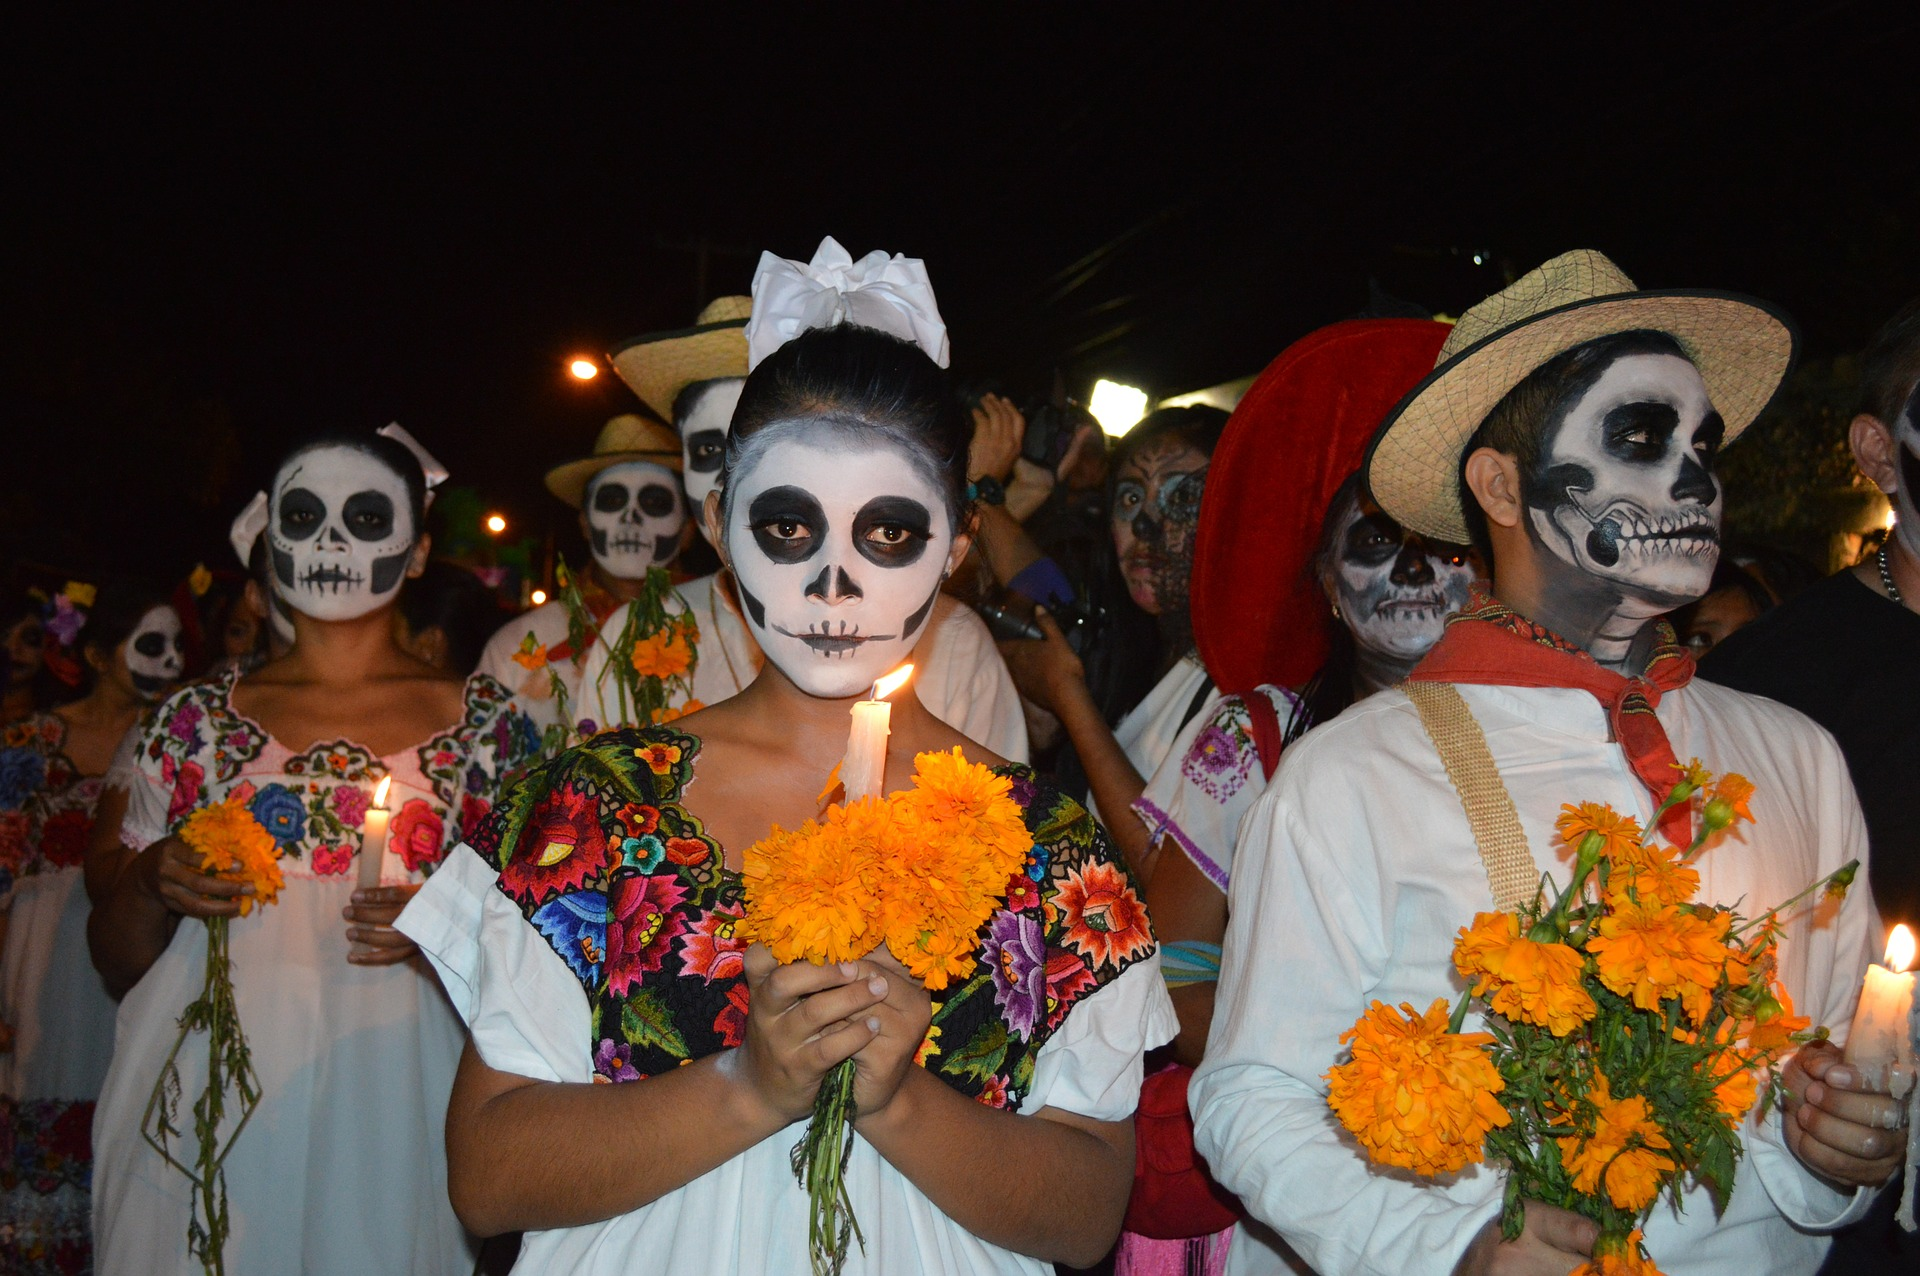 Group of people dressed in costume for Day of the Dead. Skeleton makeup and orange marigolds. Day of the Dead in Mexico / Skyscanner Canada